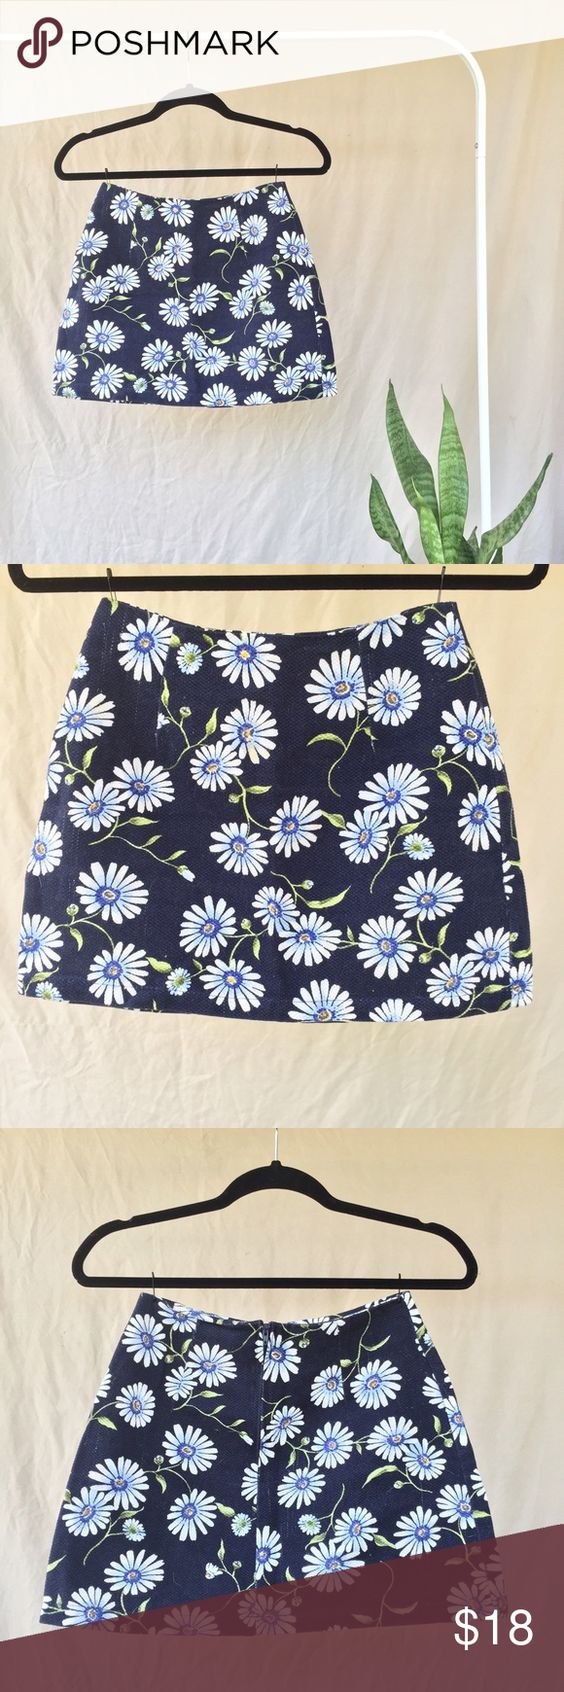 • Vintage • Daisy Floral Mini Skirt • ➕ Vintage 90s ➕ Pandora Casuals      ➕ listed as size medium, fits like x small ➕ 100 % cotton   ➕ subtle waffle knit texture    ➕ deep dark navy (almost black) color    ➕ white daisy floral pattern    ➕ w blue, yellow and green detailing    ➕ perfectly tapered to flatter hips and booty   ➕ fabric has small amount of stretch   ➕ hidden back zipper  ➕ super flattering 90s style    ➕ subtle thread pulls    ➕ (see last photo for example ) ➕ Measurements…